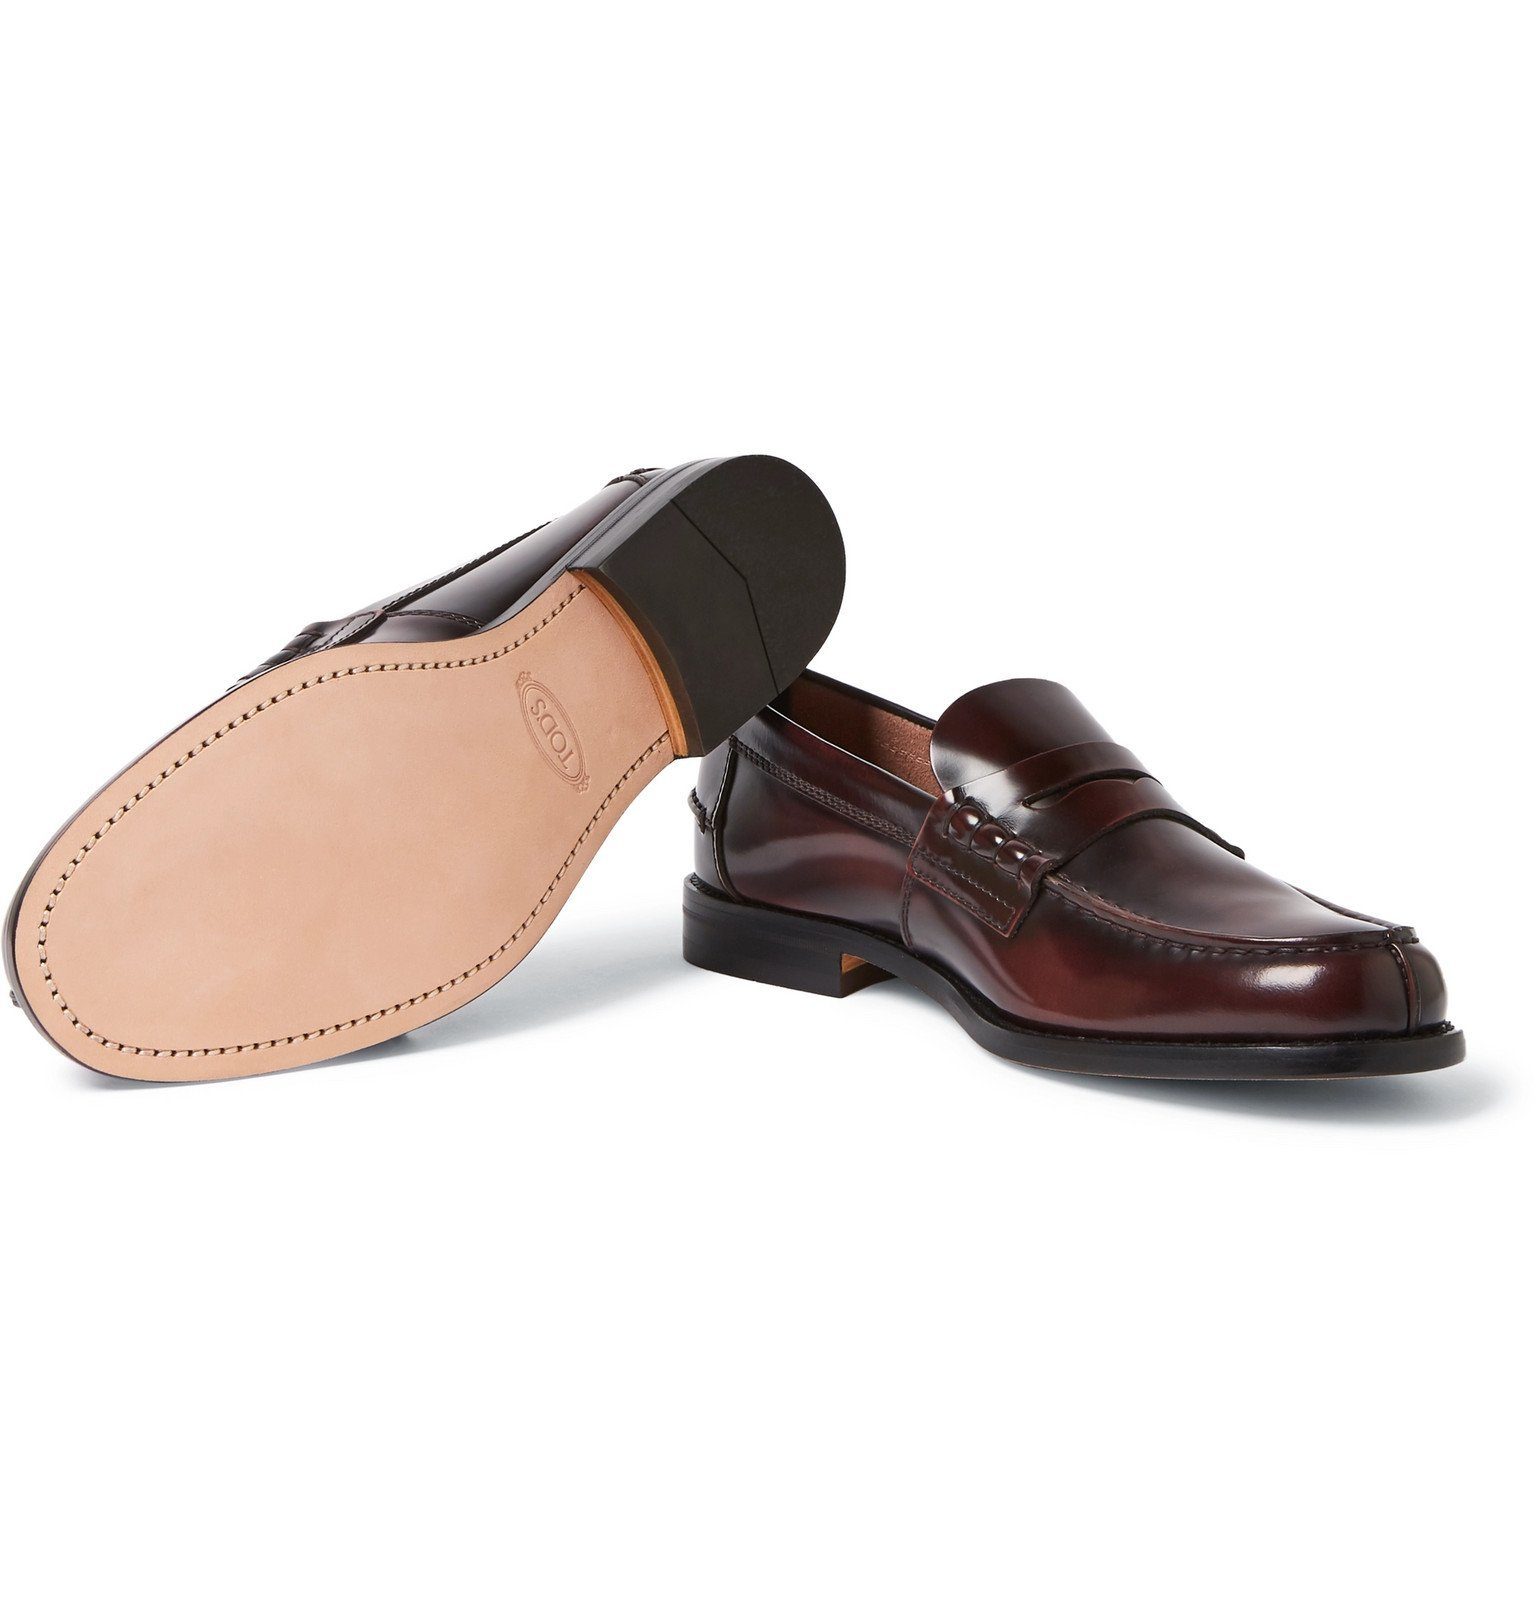 Tod's - Leather Penny Loafers - Burgundy